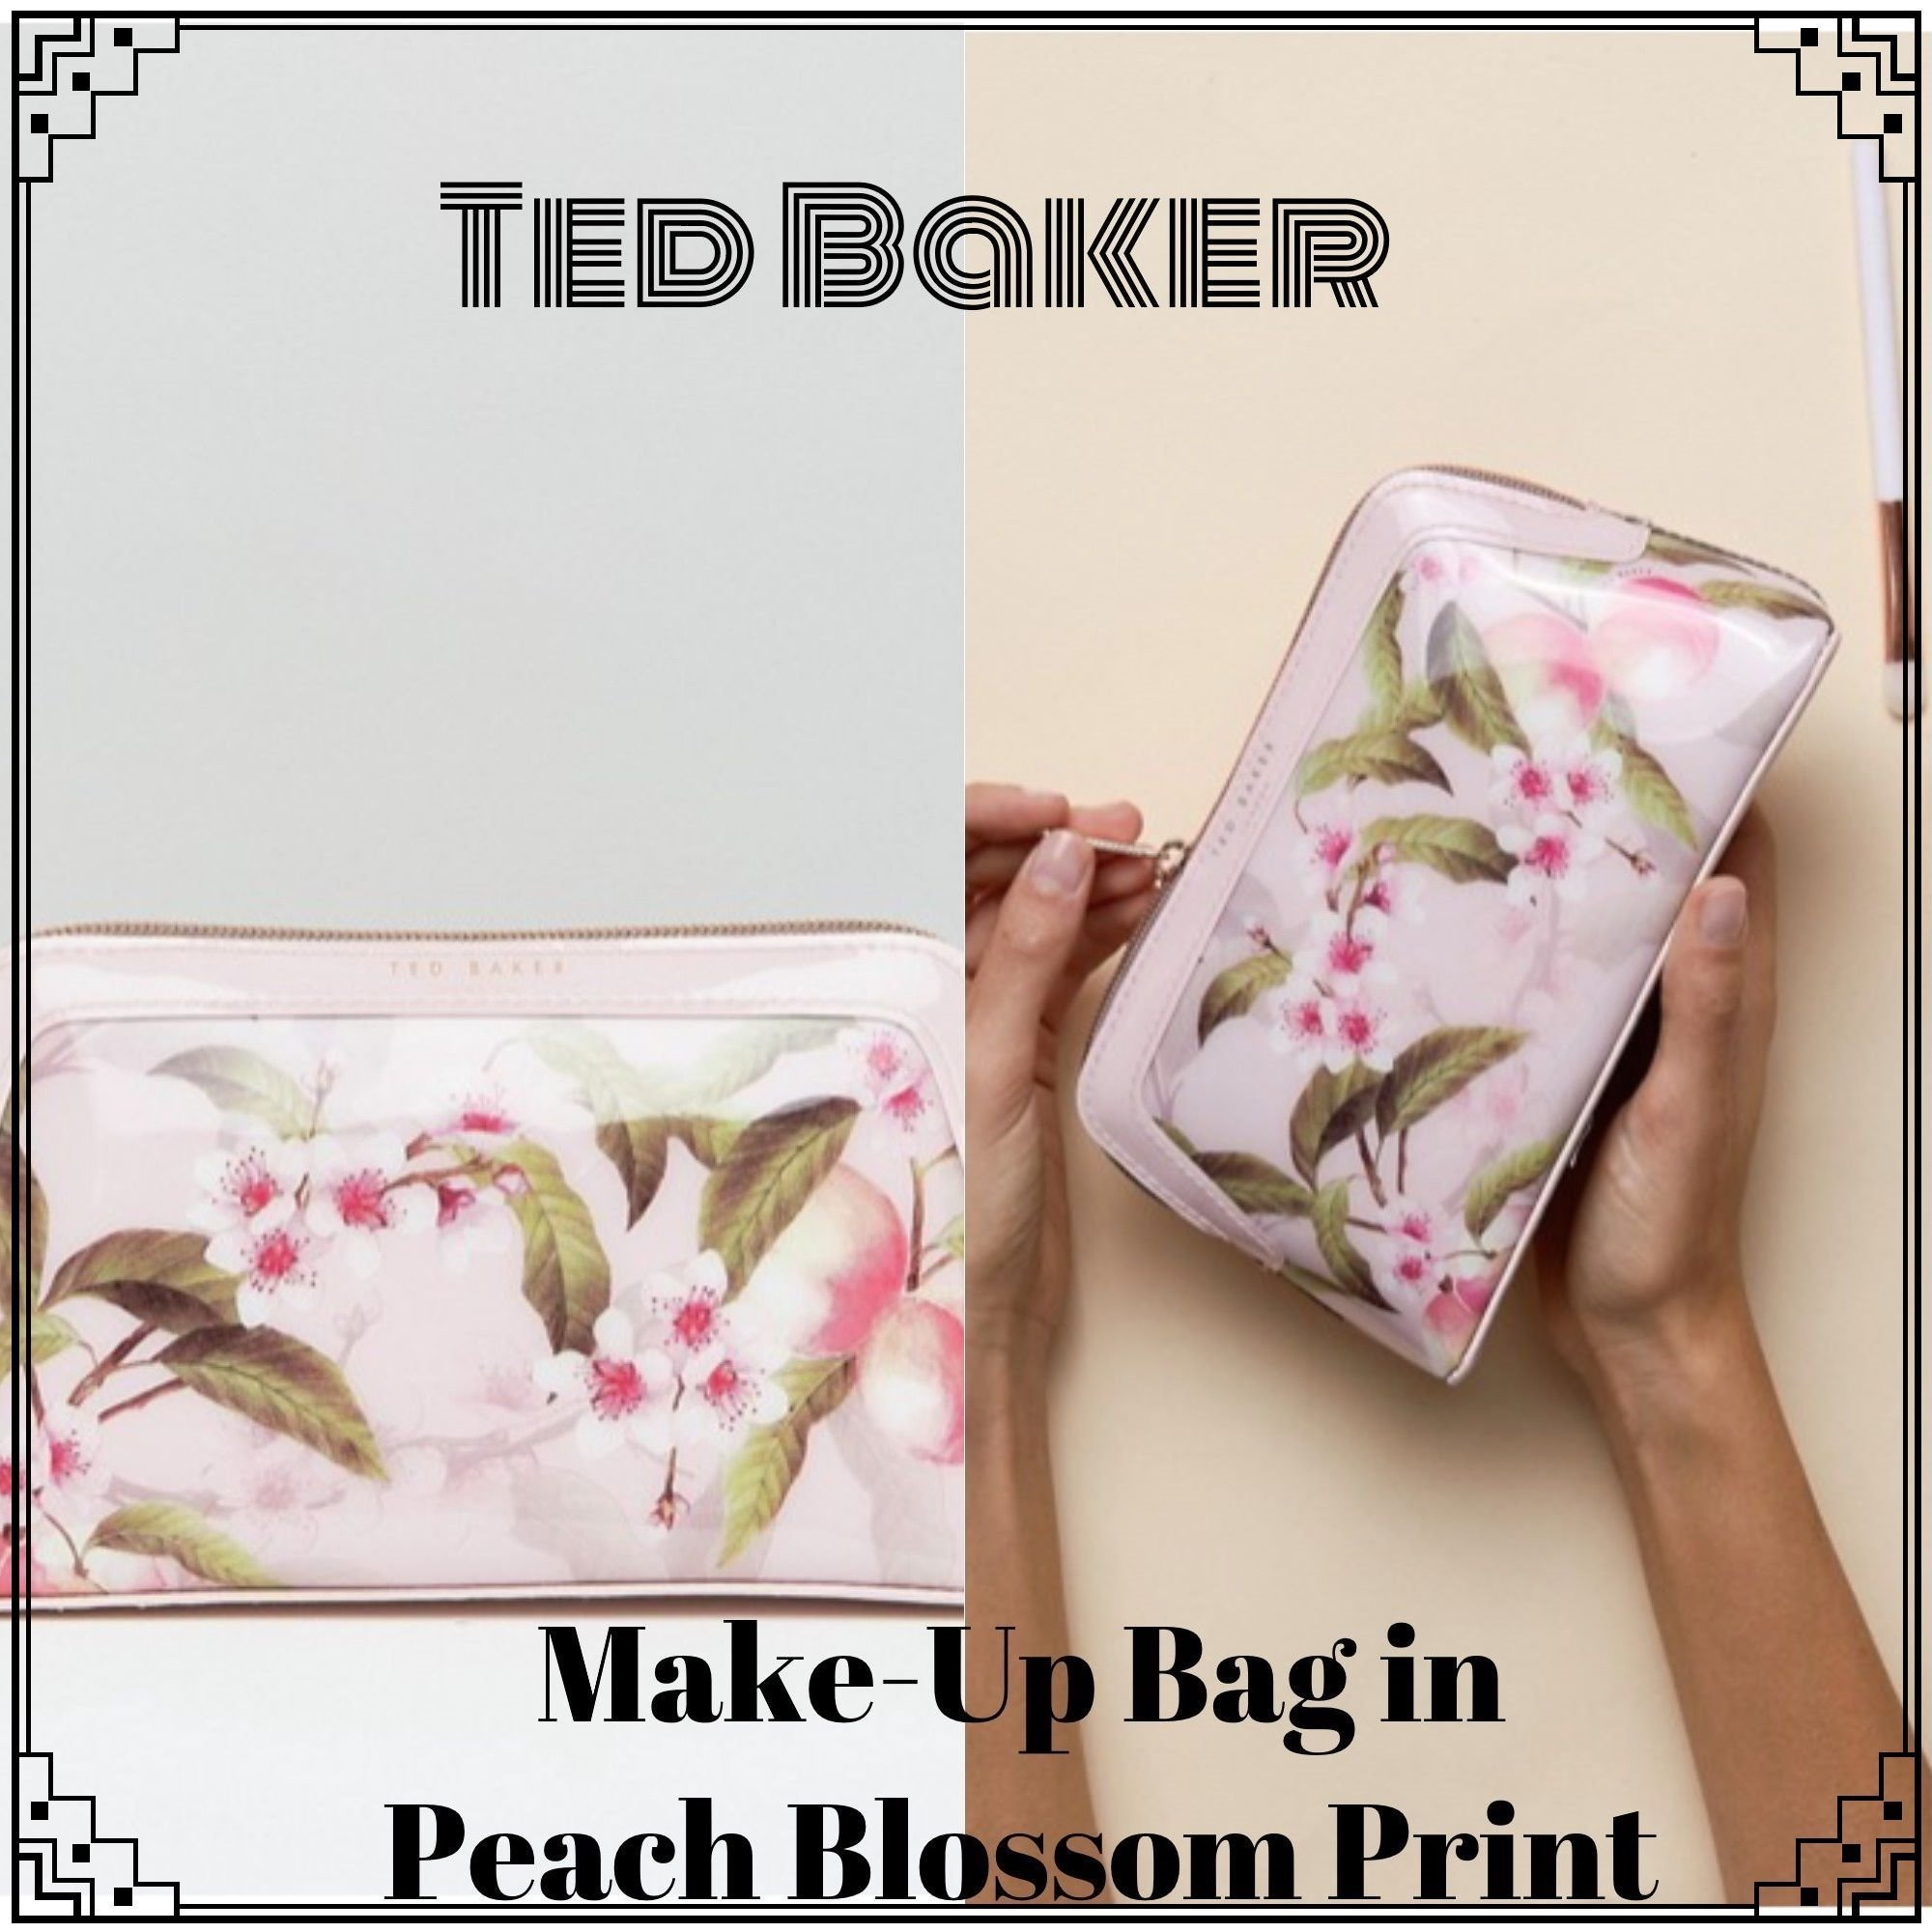 Ted Baker☆メイクアップバッグ桃の花のプリント